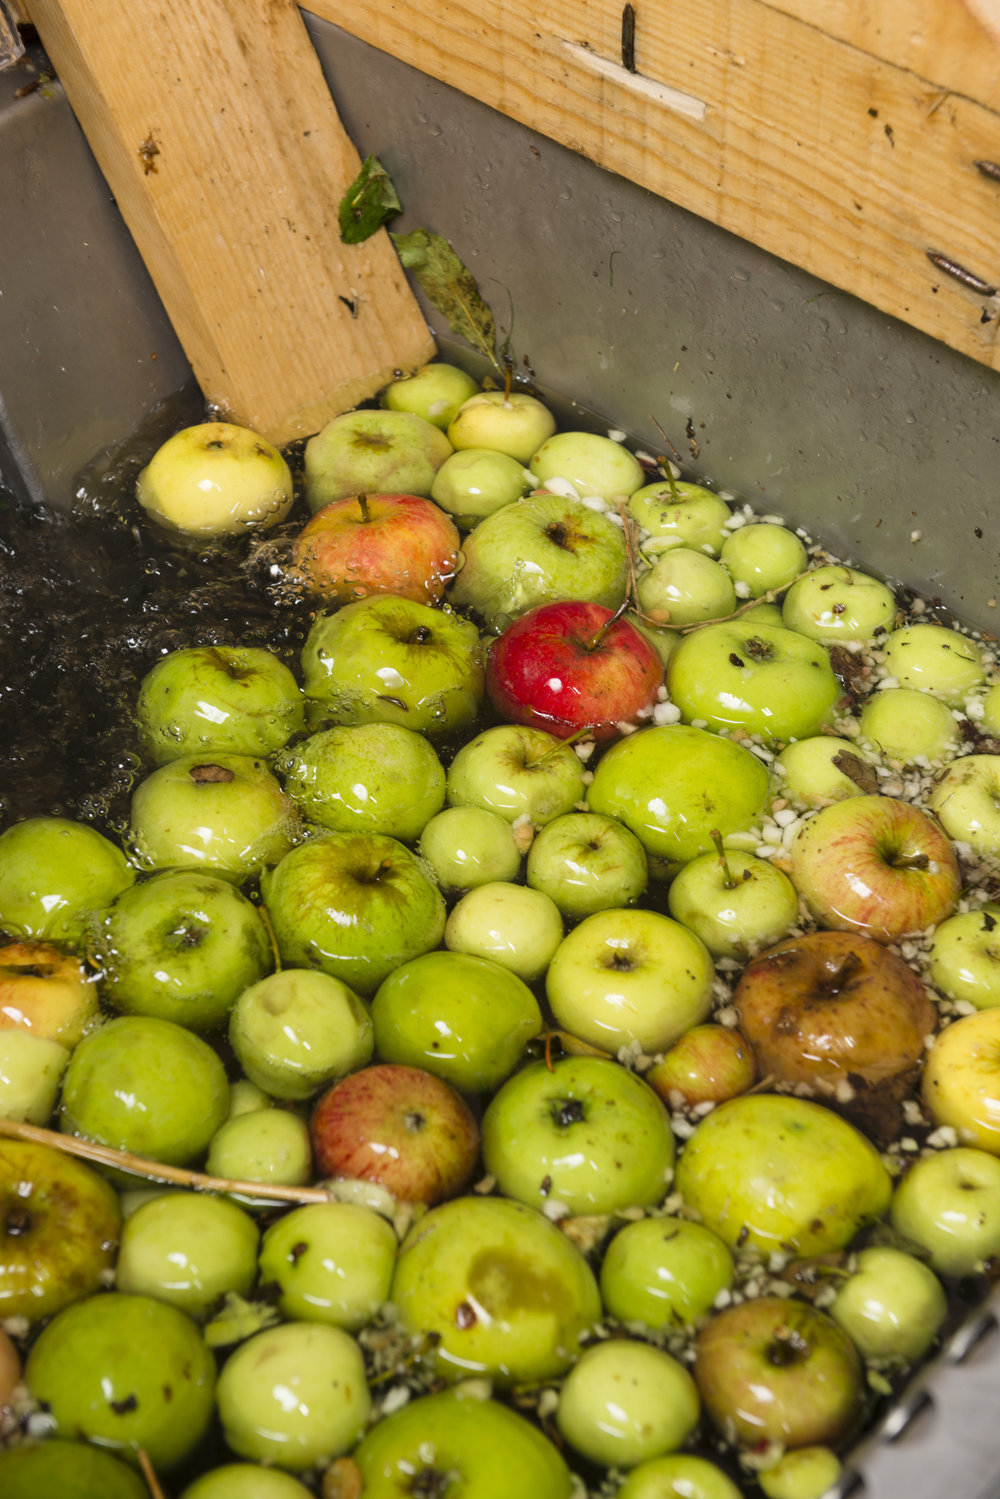 Apples being washed before pressing at Hawkes Cider.